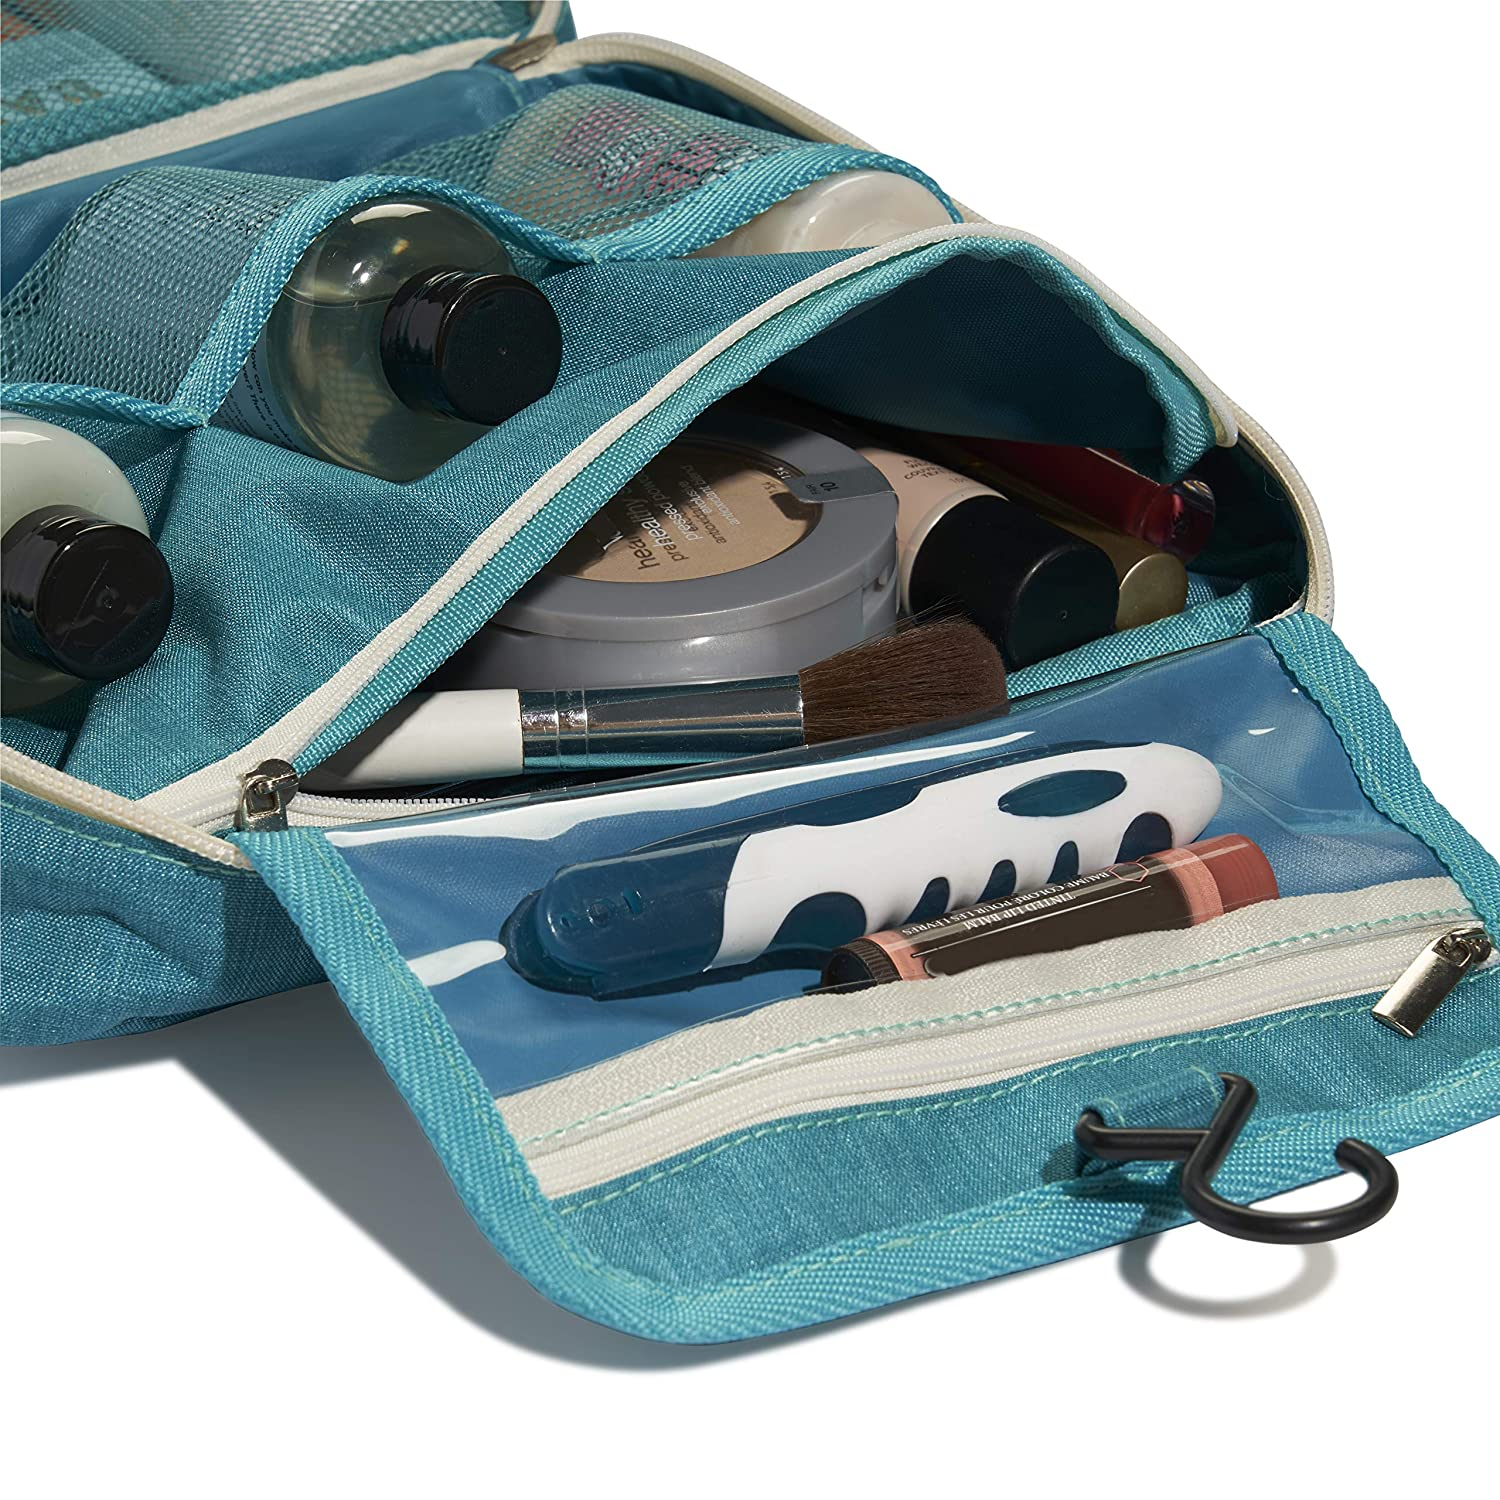 17aa345f4a73 Hanging Toiletry Bags by CISABee - Toiletry Bag | Toiletries Carrier for  Bathroom and Shower | Women or...